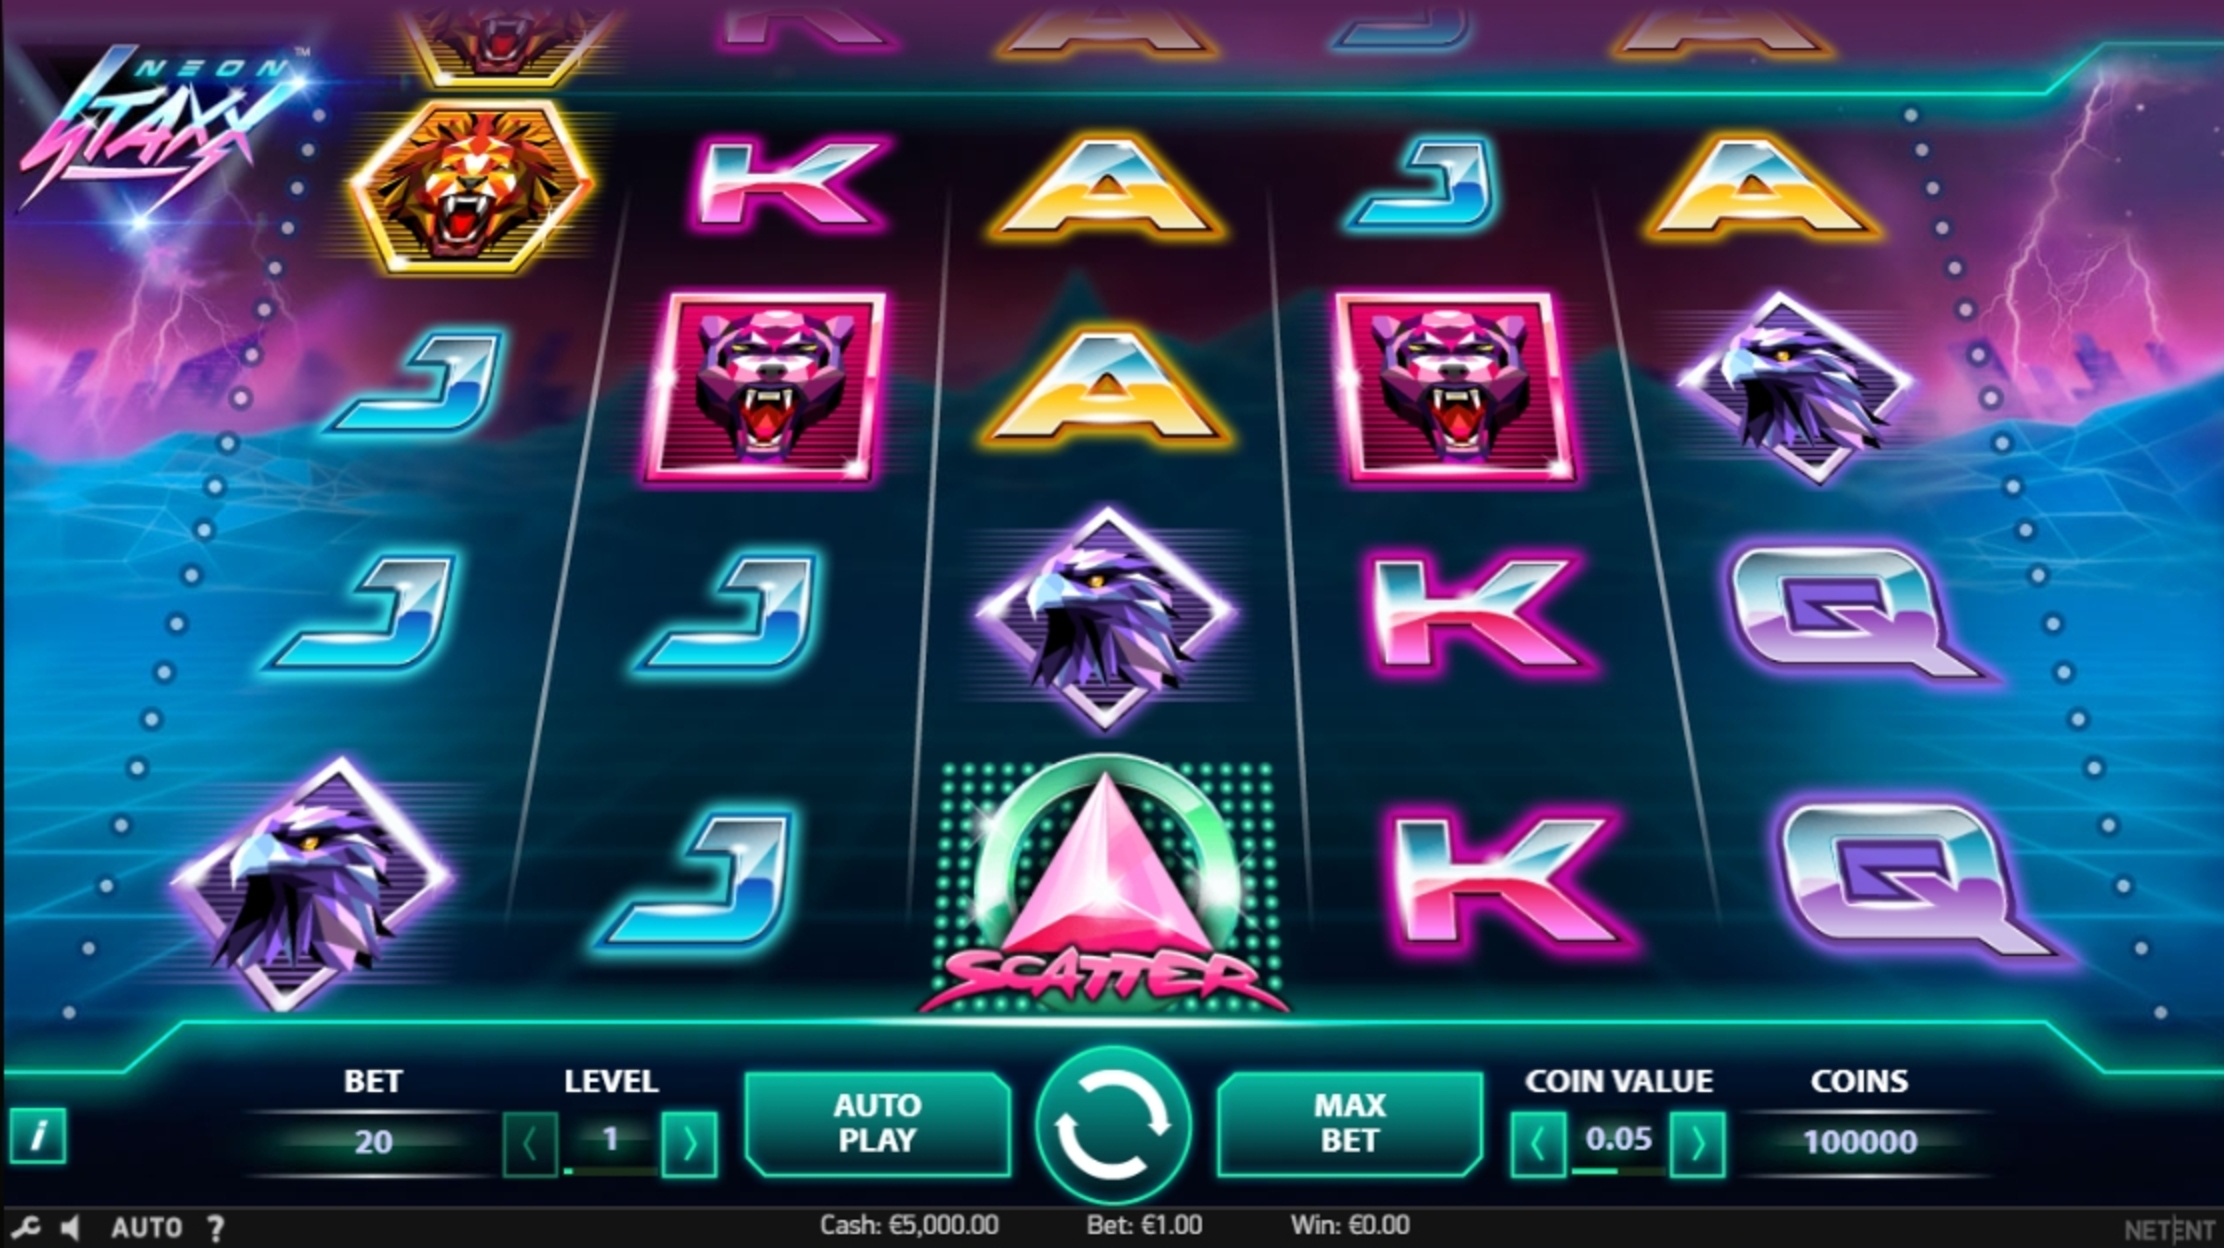 Reels in Neon Staxx Slot Game by NetEnt